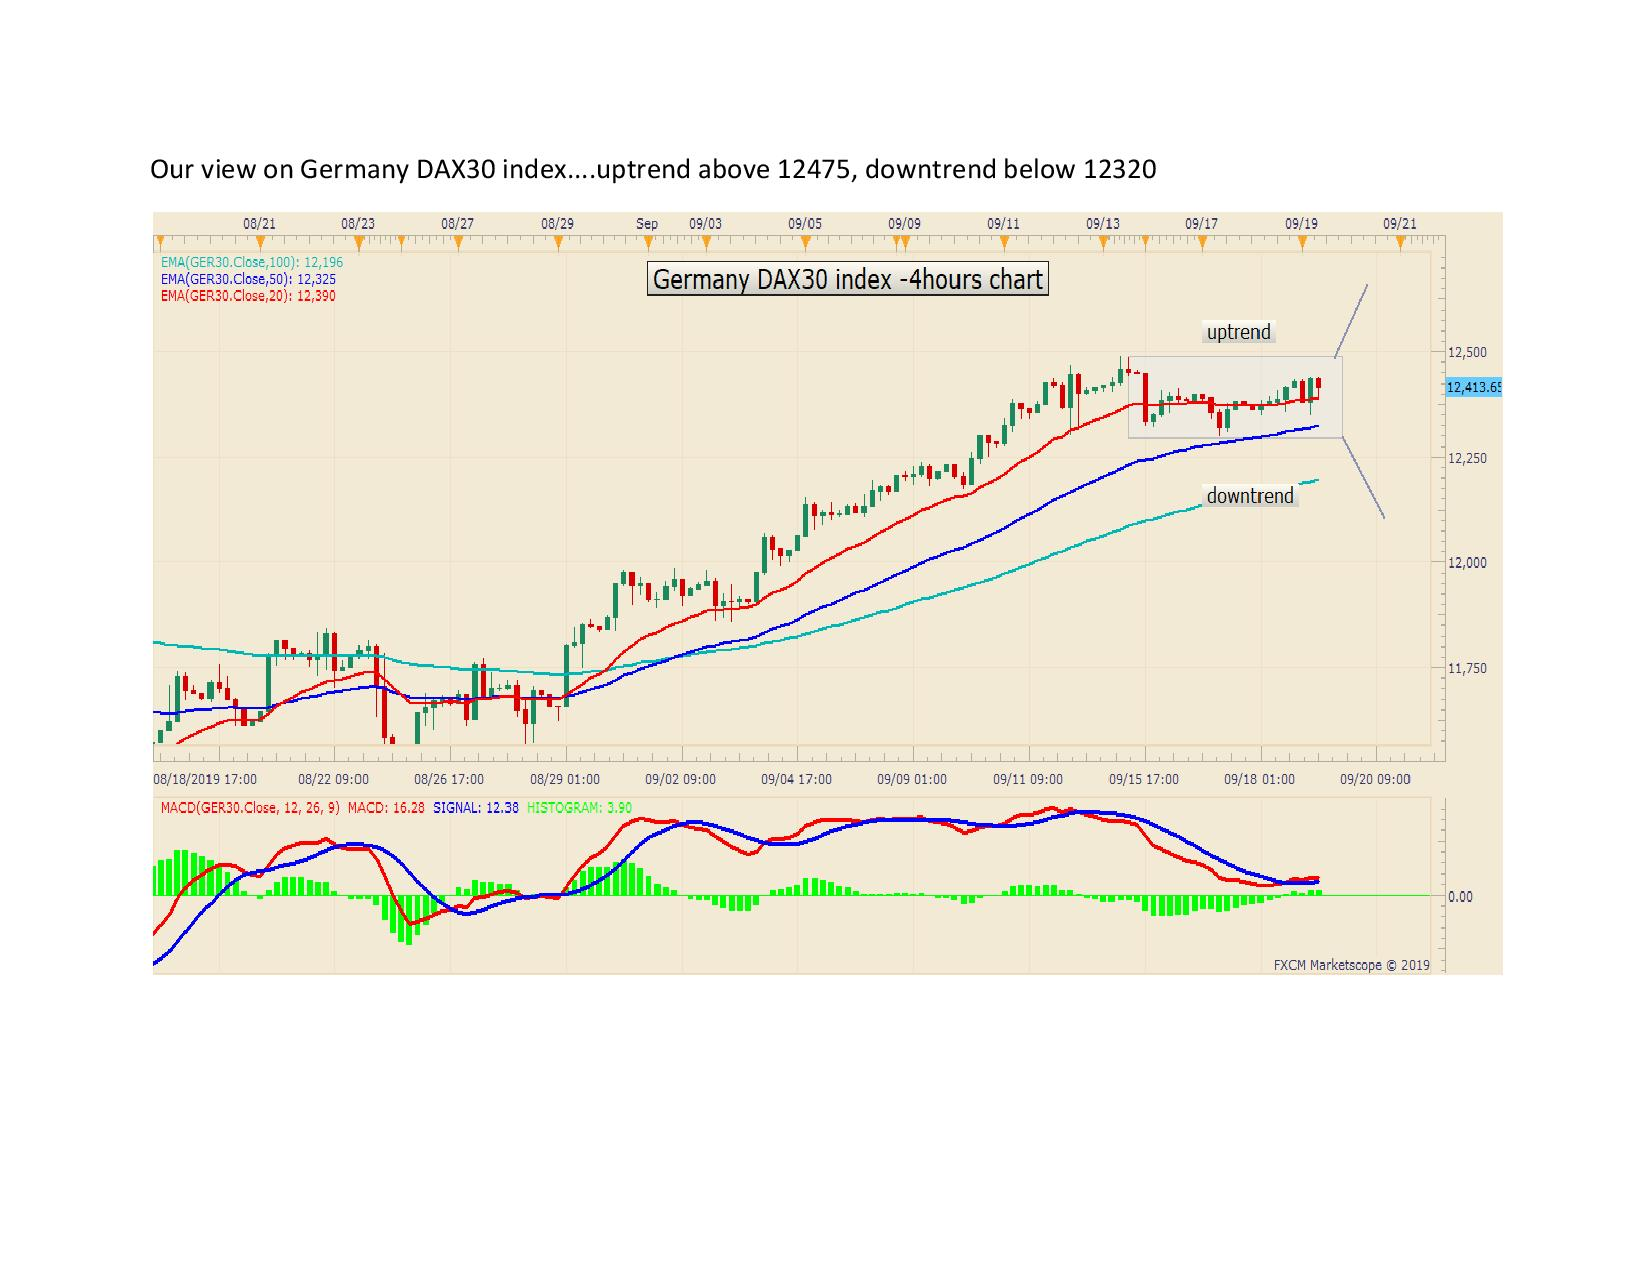 Our view on Germany DAX30 index page 001